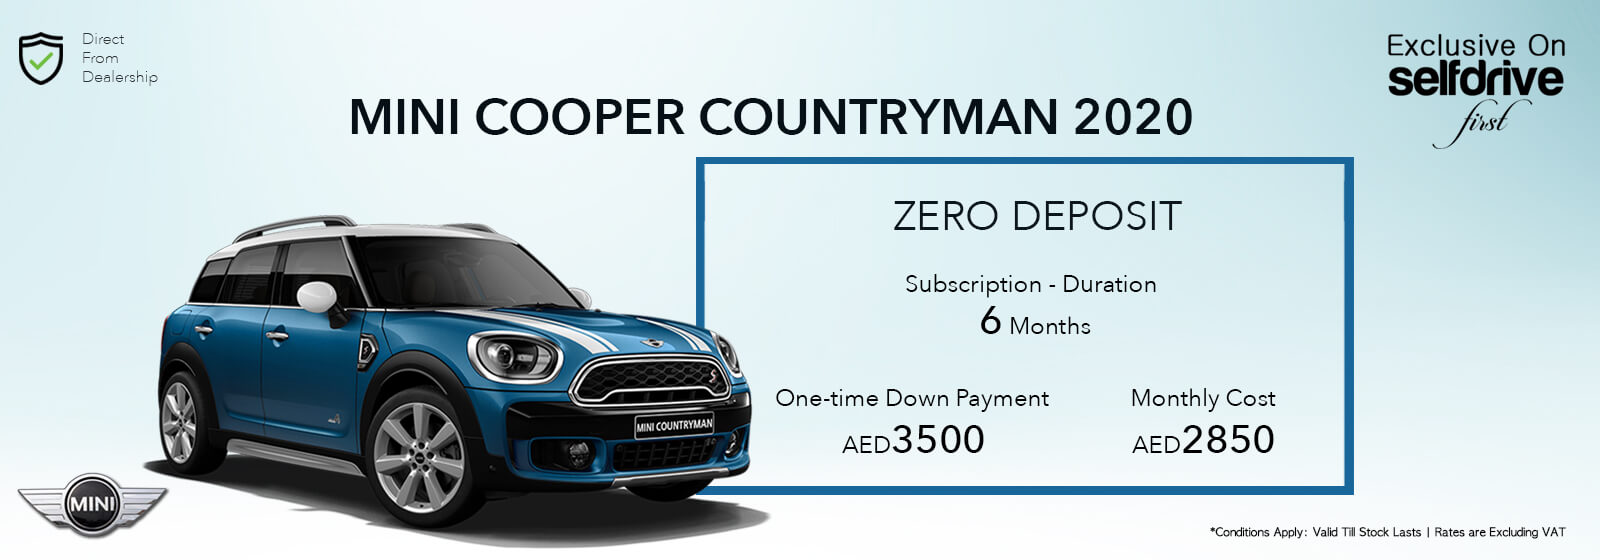 Mini Cooper Countryman Subscription Offers